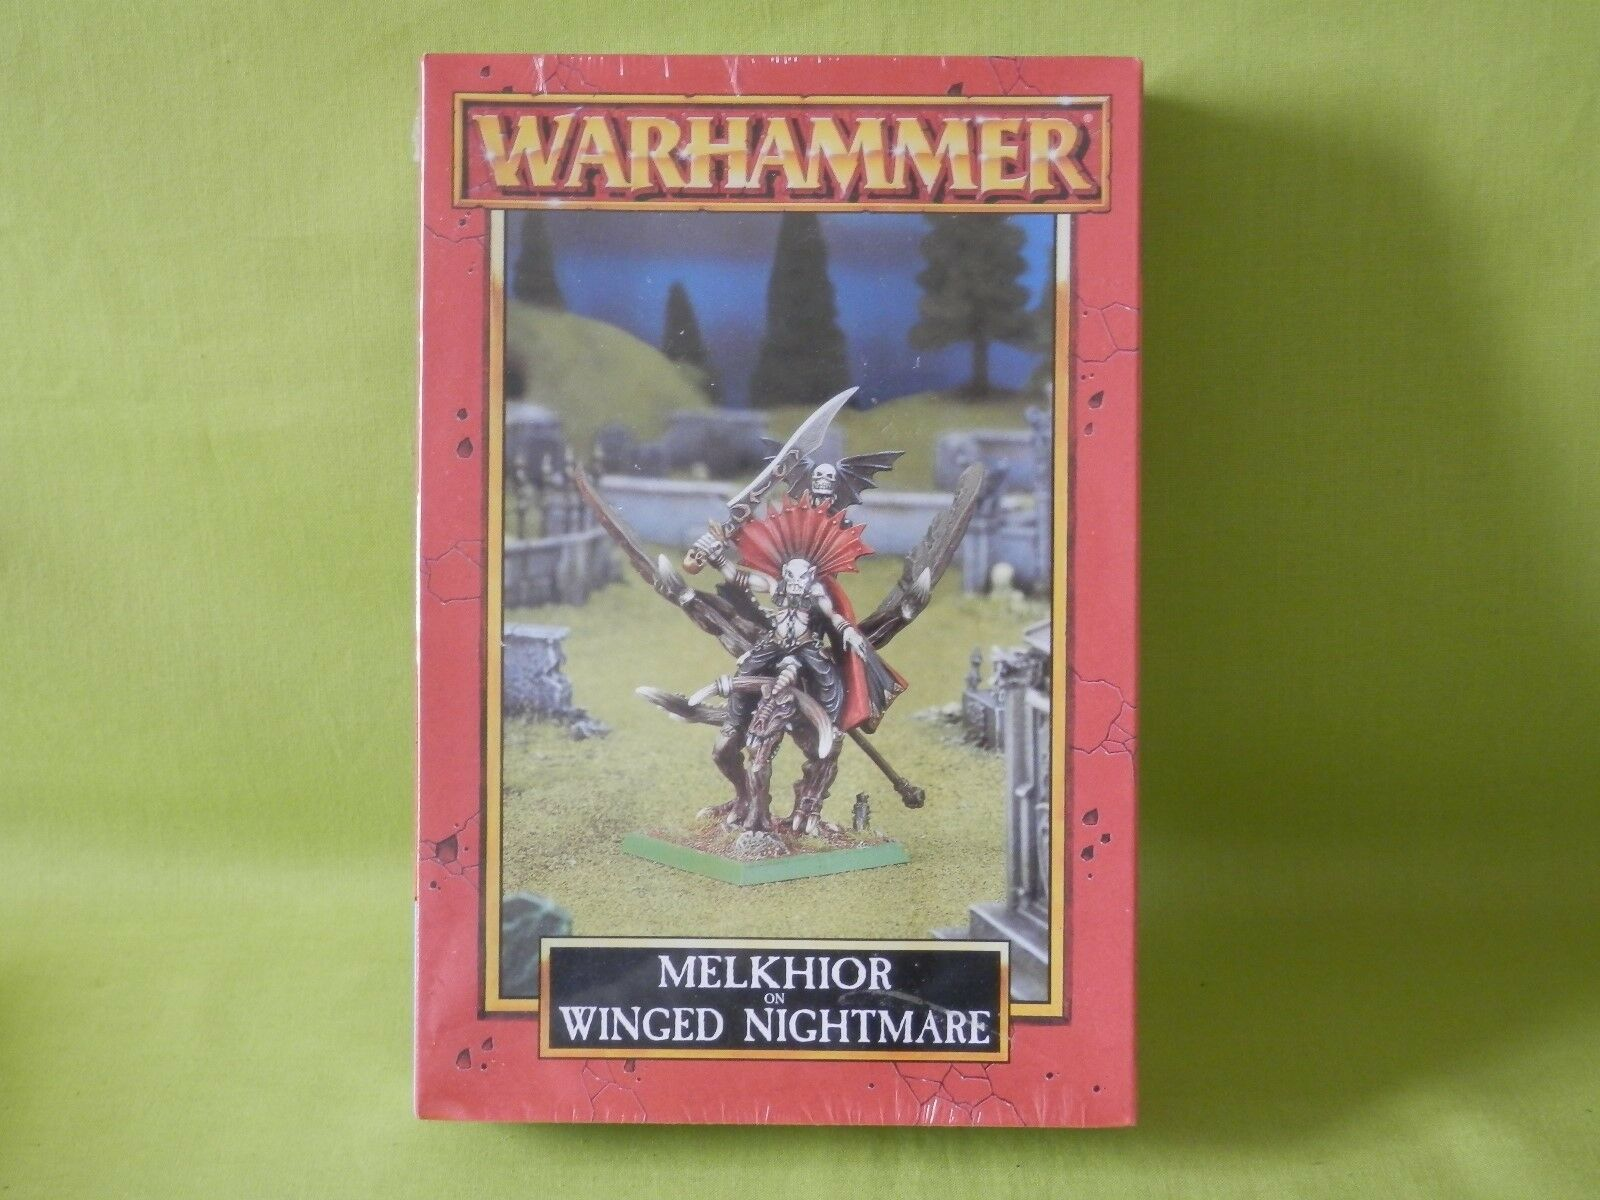 WARHAMMER  - VAMPIRE COUNTS ARMY MELKHIOR ON ON ON WINGED NIGHTMARE MISB a3ab02